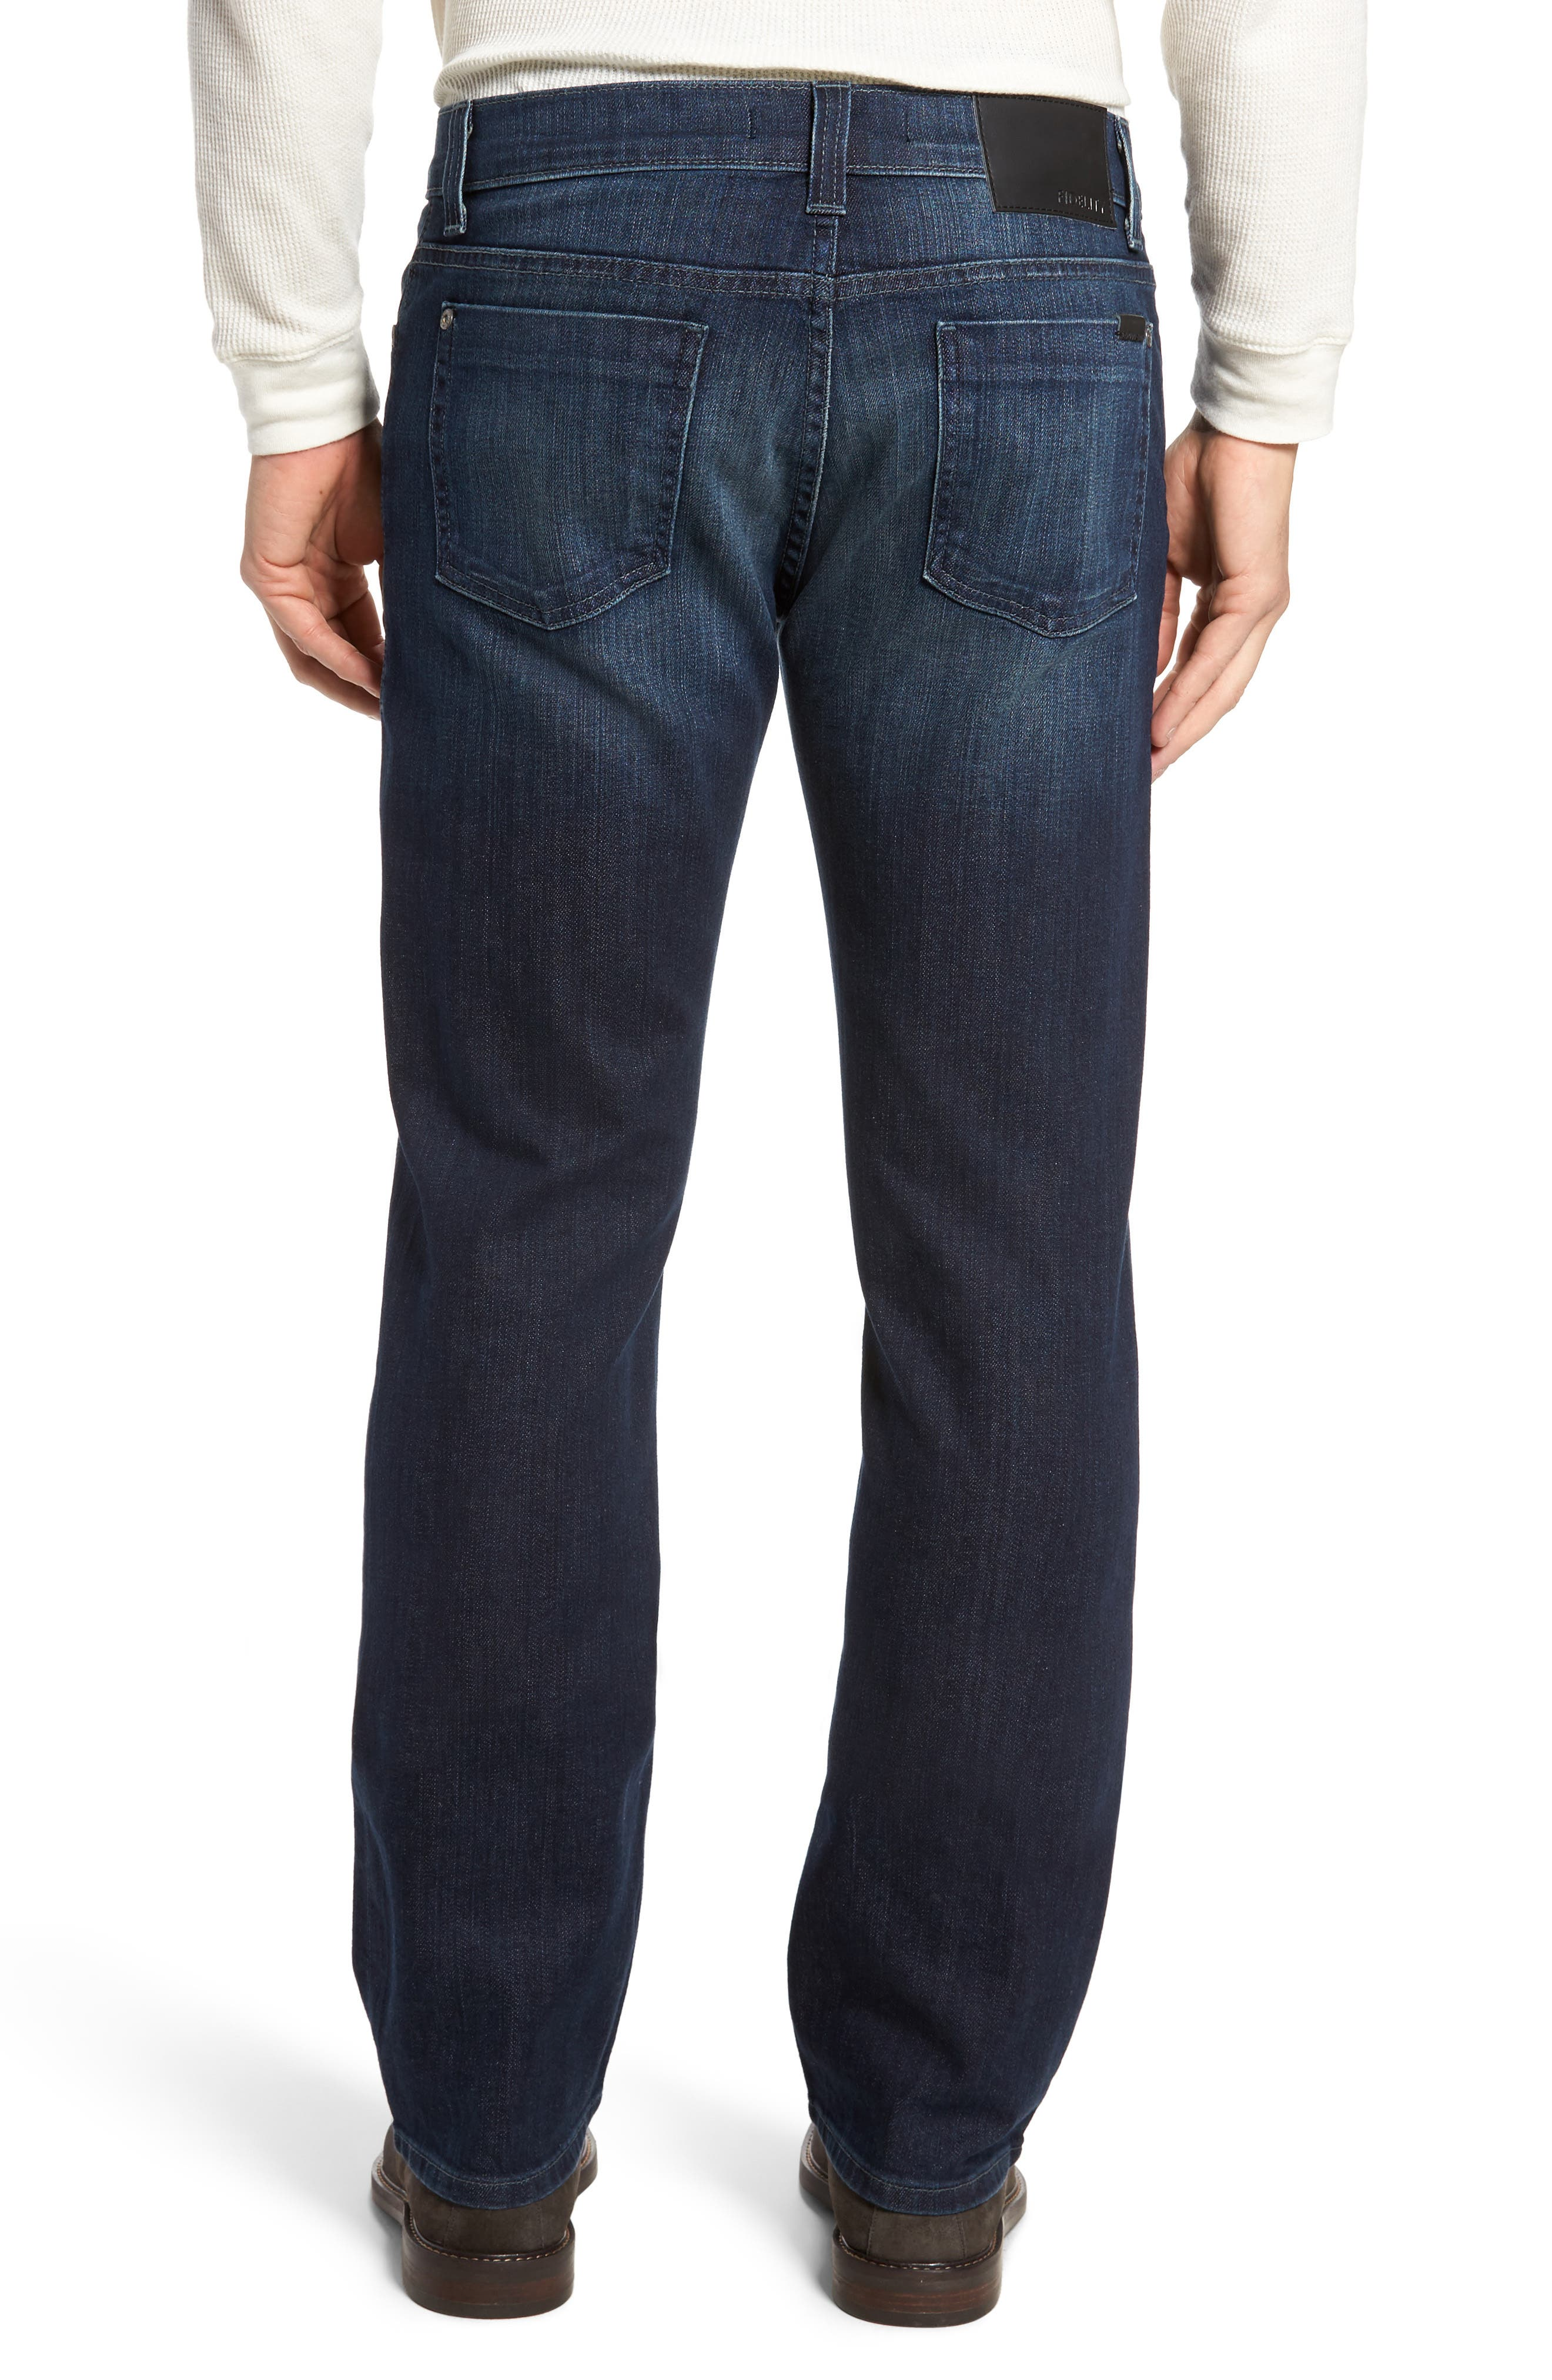 50-11 Relaxed Fit Jeans,                             Alternate thumbnail 2, color,                             Militia Blue